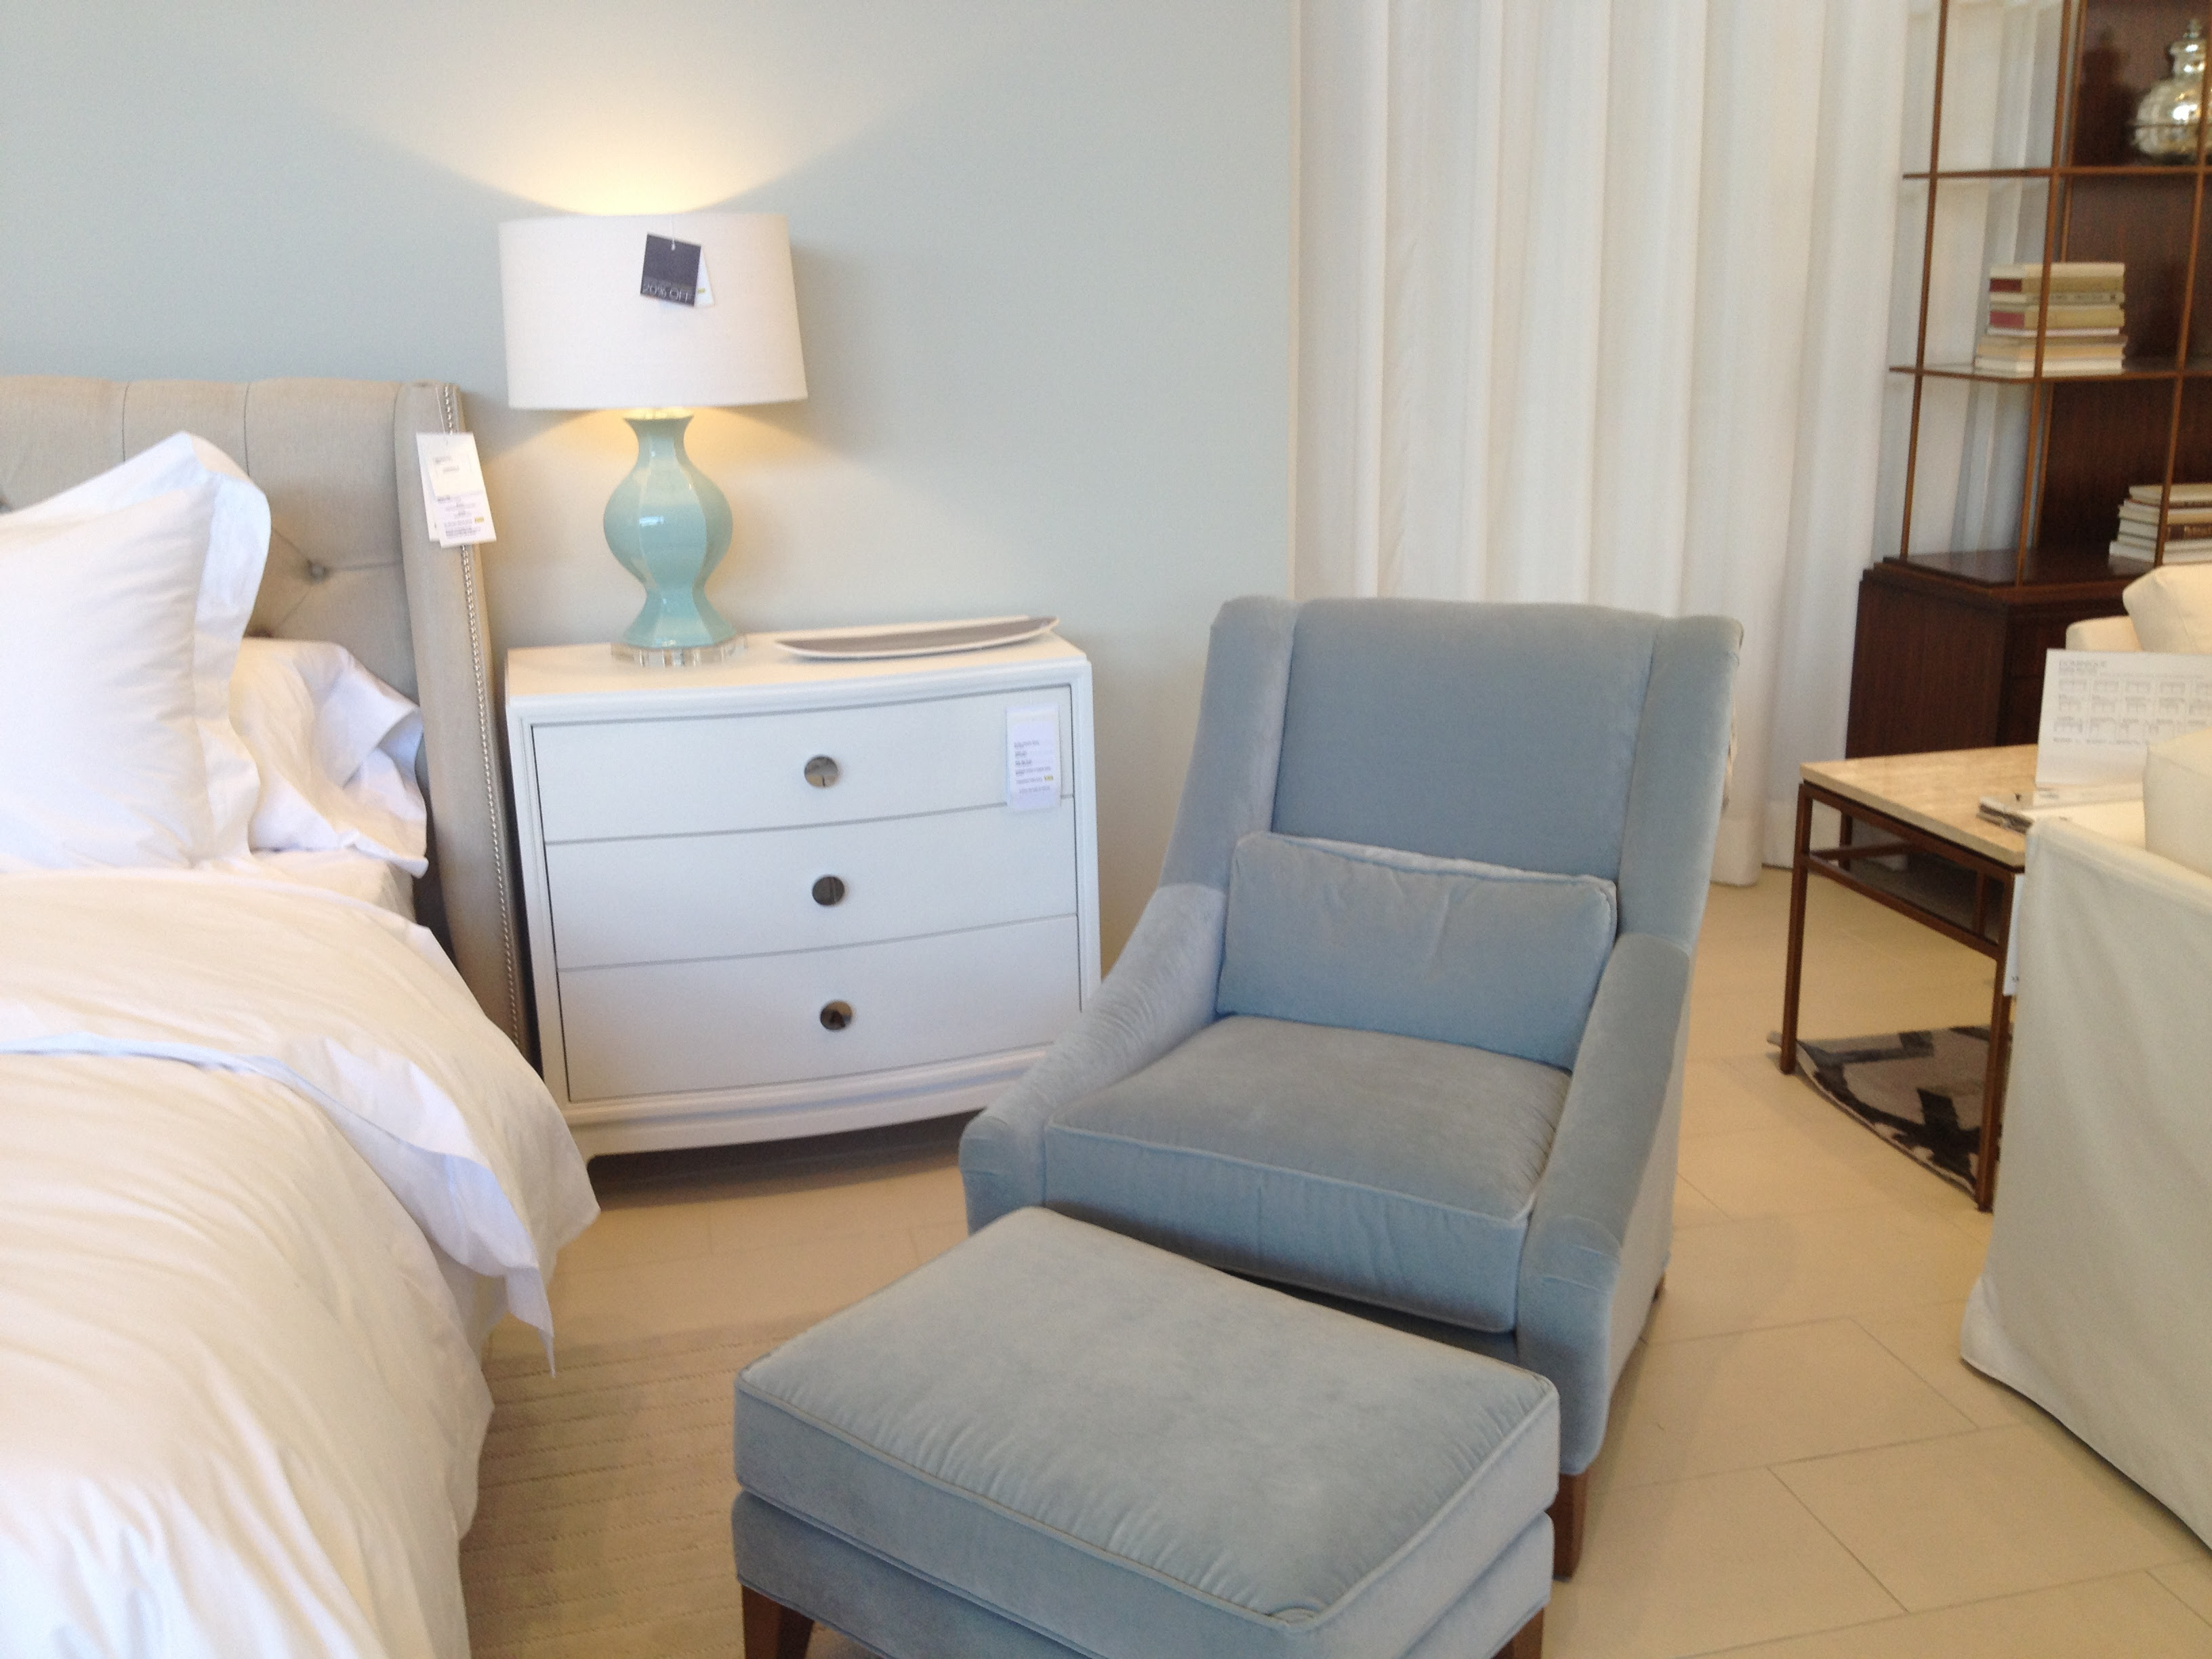 Comfortable Bedroom Chairs